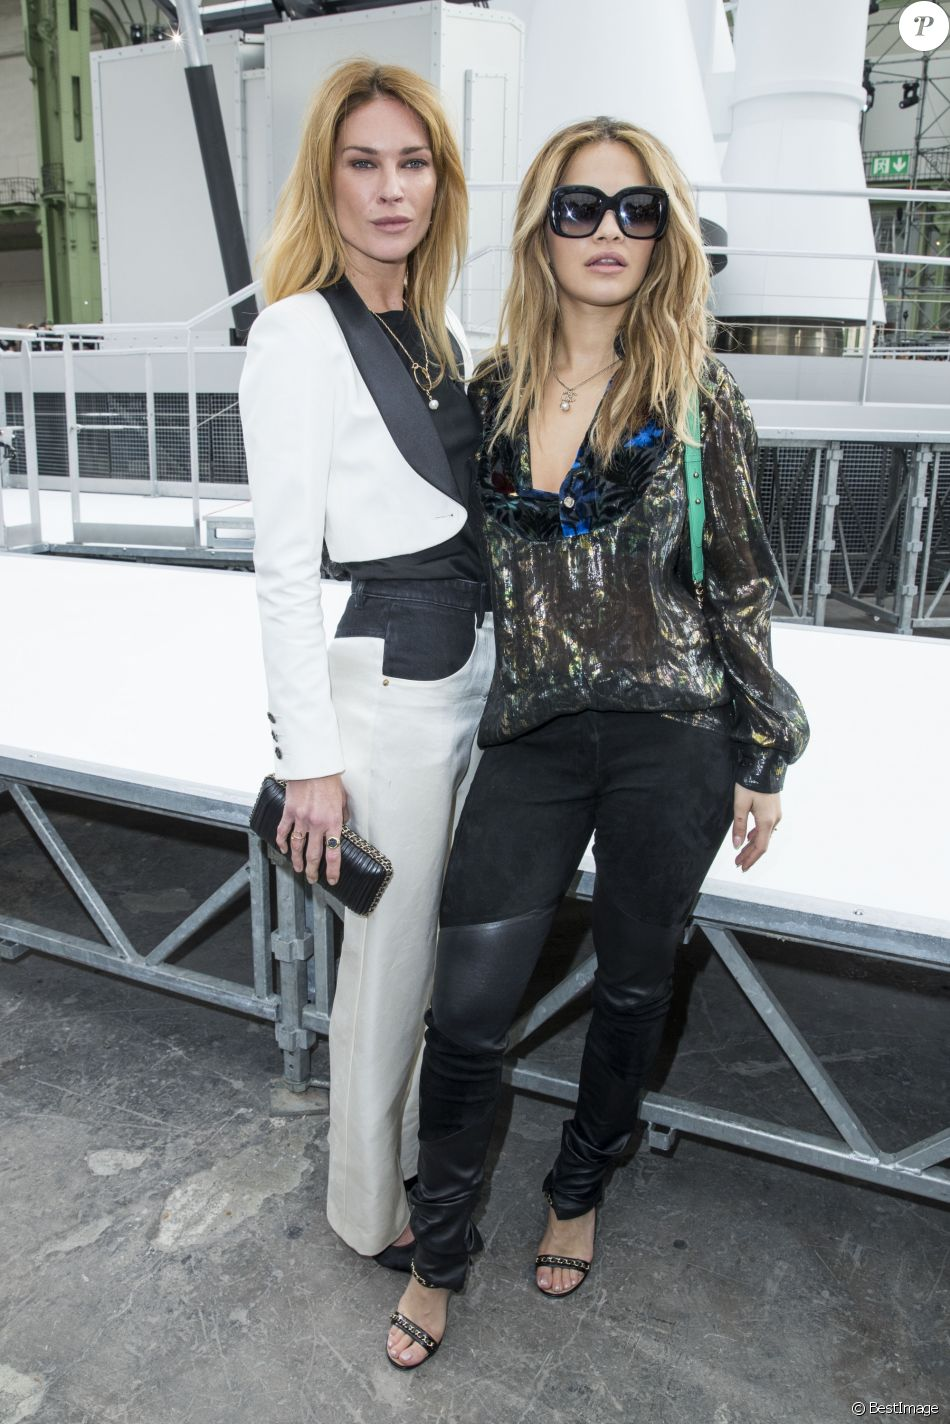 Erin wasson et rita ora d fil de mode chanel collection Fashion and style by vanja m facebook